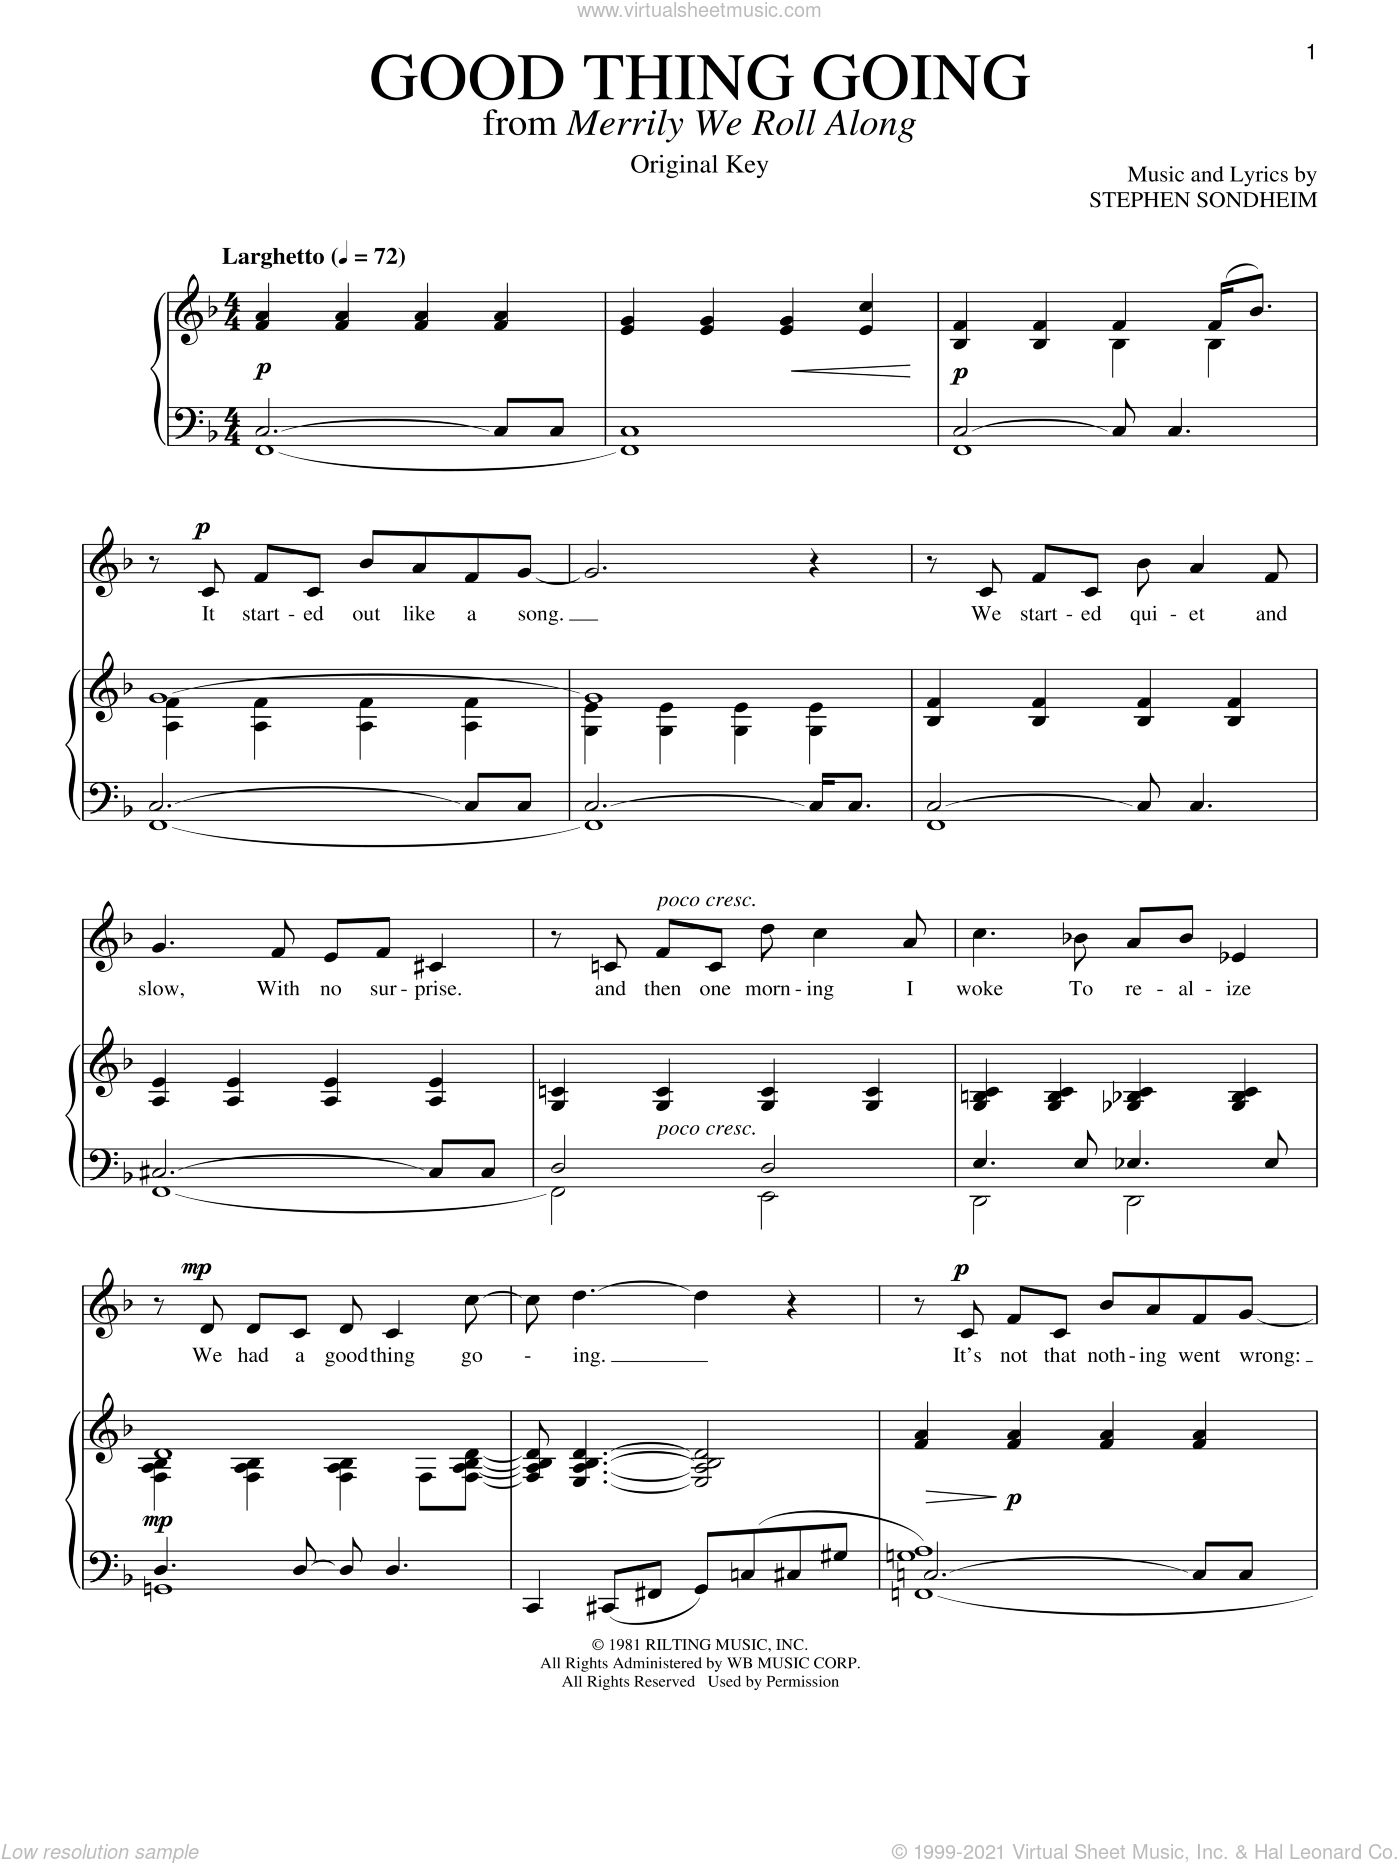 Good Thing Going sheet music for voice and piano by Stephen Sondheim, intermediate skill level